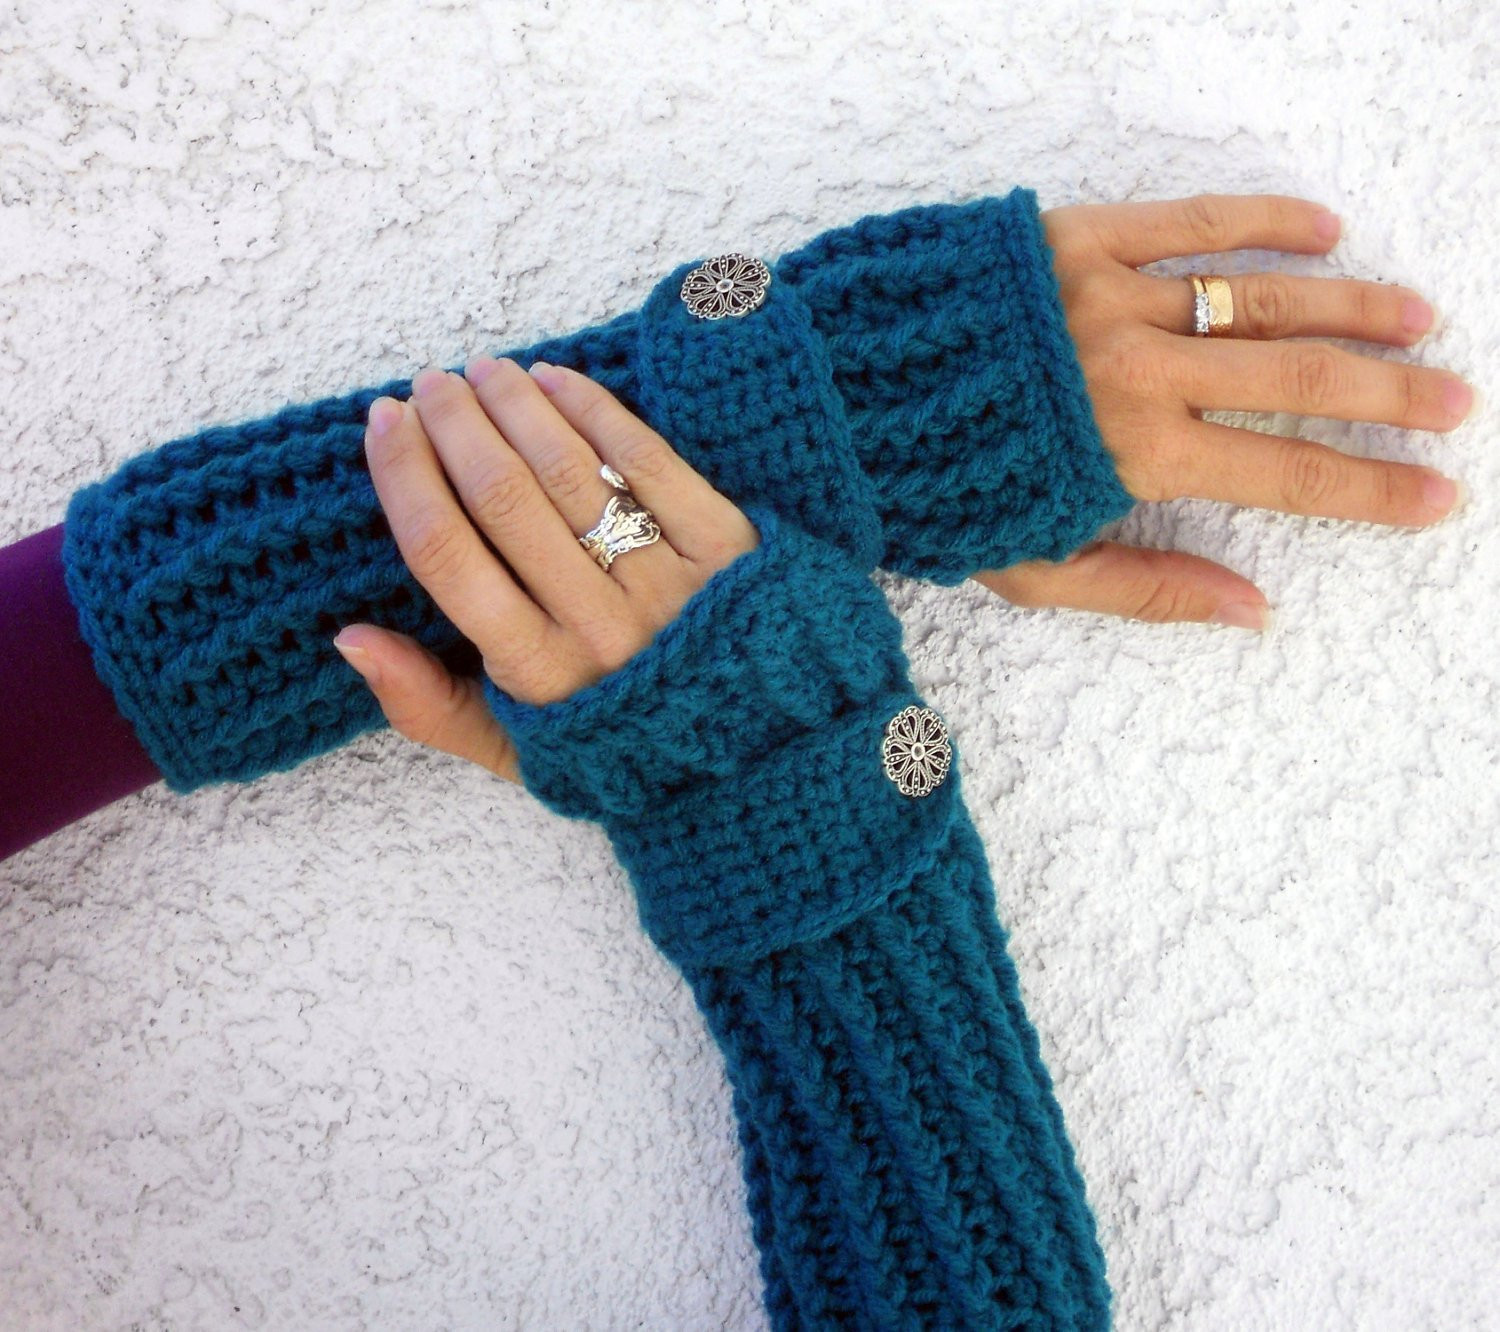 Lovely Teal Long Ribbed with Wrist Strap Crochet button Arm Warmers Crochet Arm Warmers Of Gorgeous 44 Images Crochet Arm Warmers